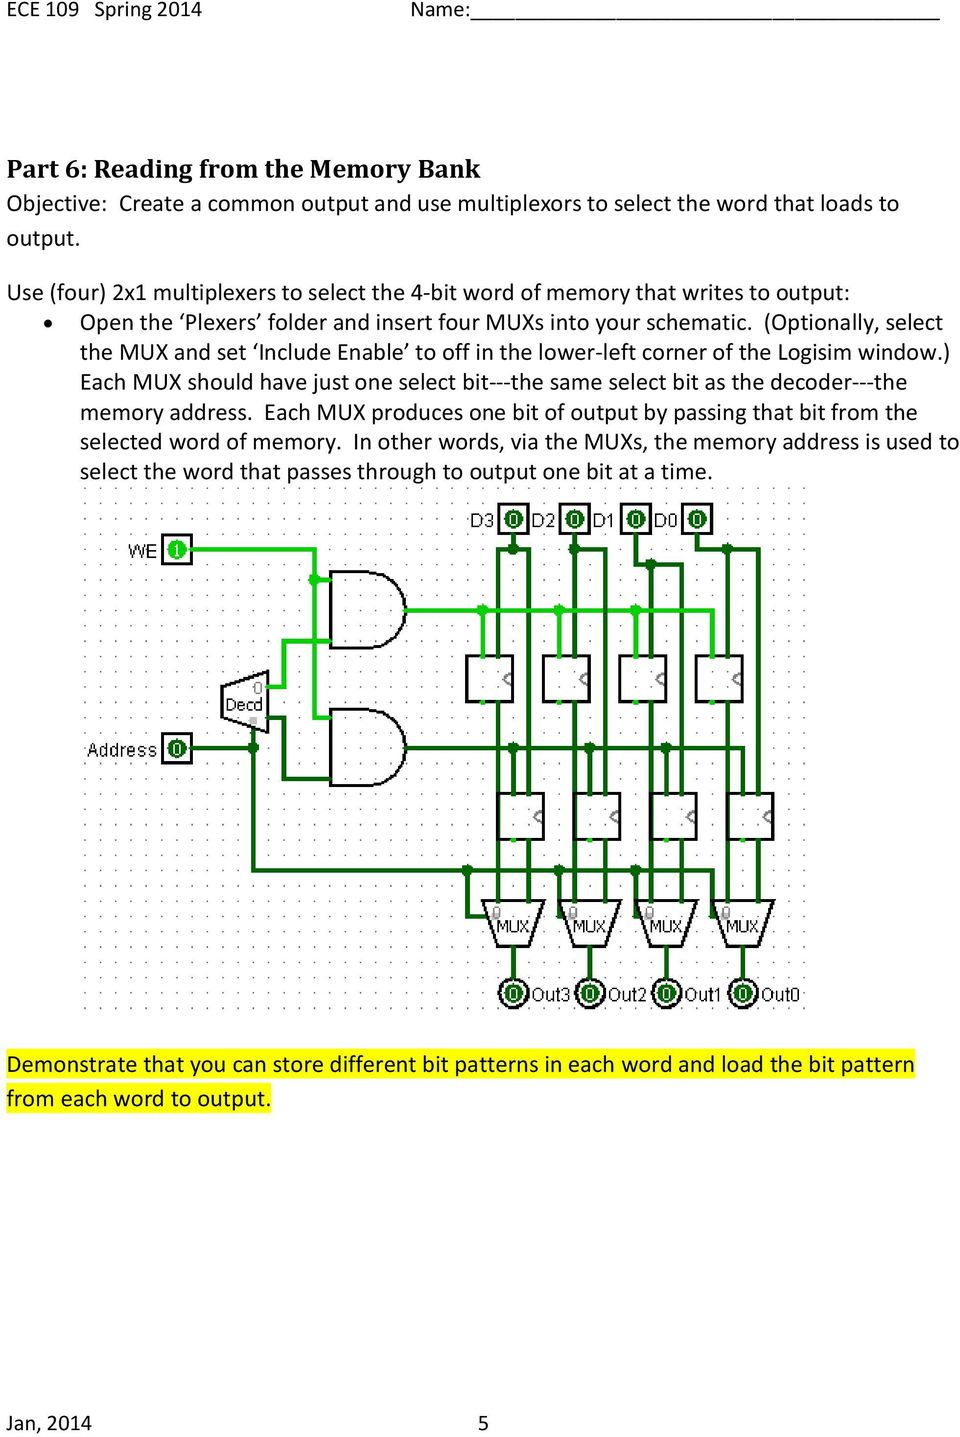 Problem Session 5 Overview Part 1 An S R Latch 2 A D Figure 8 4x1 Multiplexer With 2x4 Decoder Selector Block Diagram Optionally Select The Mux And Set Include Enable To Off In Lower